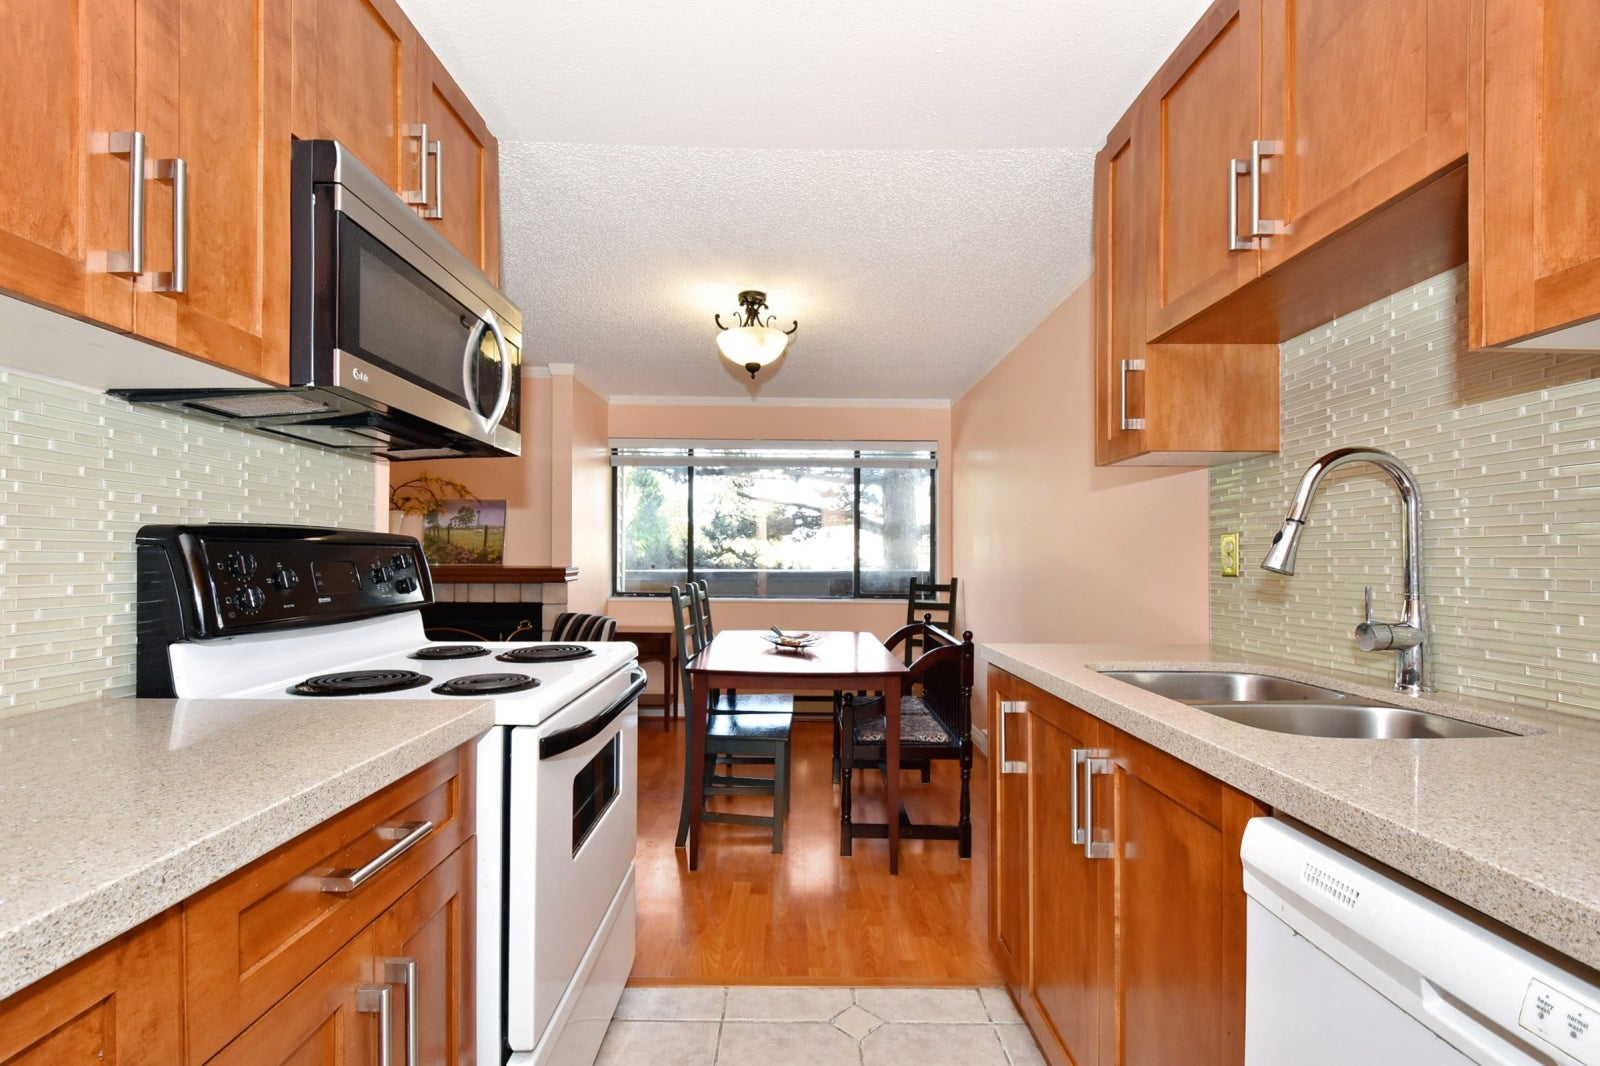 168 7293 MOFFATT ROAD - Brighouse South Apartment/Condo for sale, 2 Bedrooms (R2261480) #12